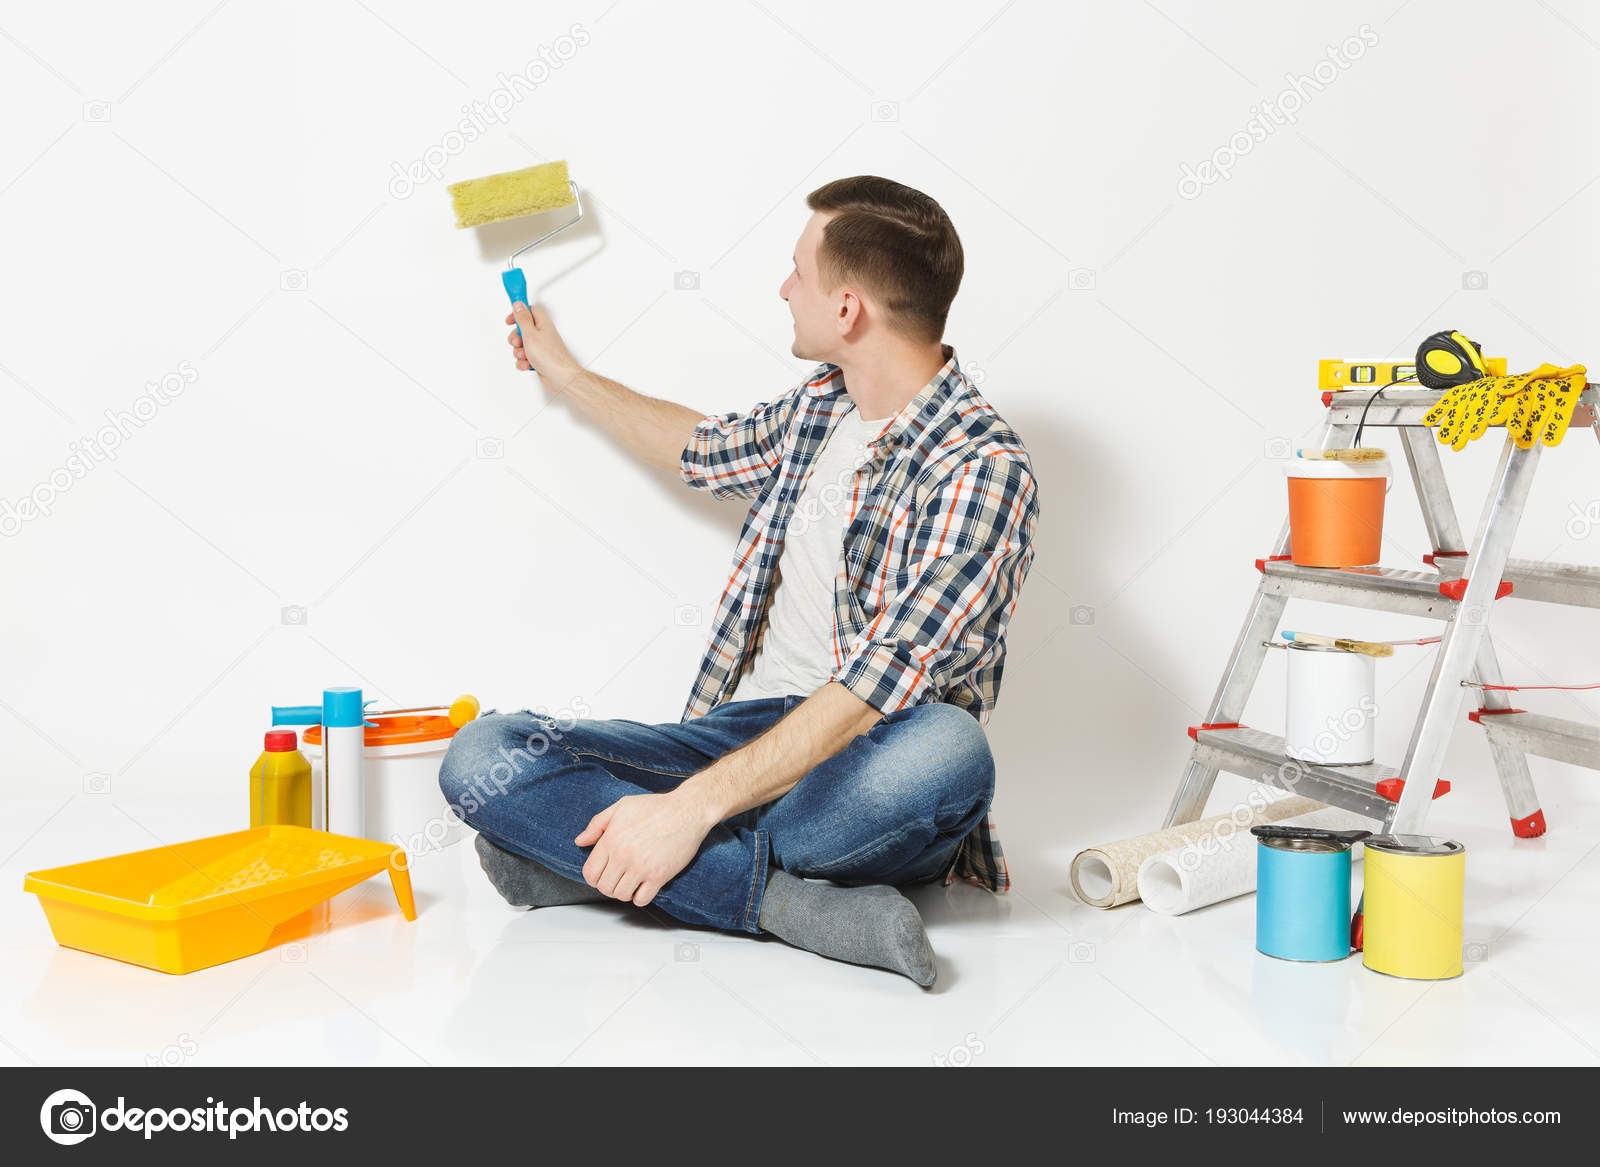 Man Sitting On Floor Using On Wall Paint Roller Instruments For